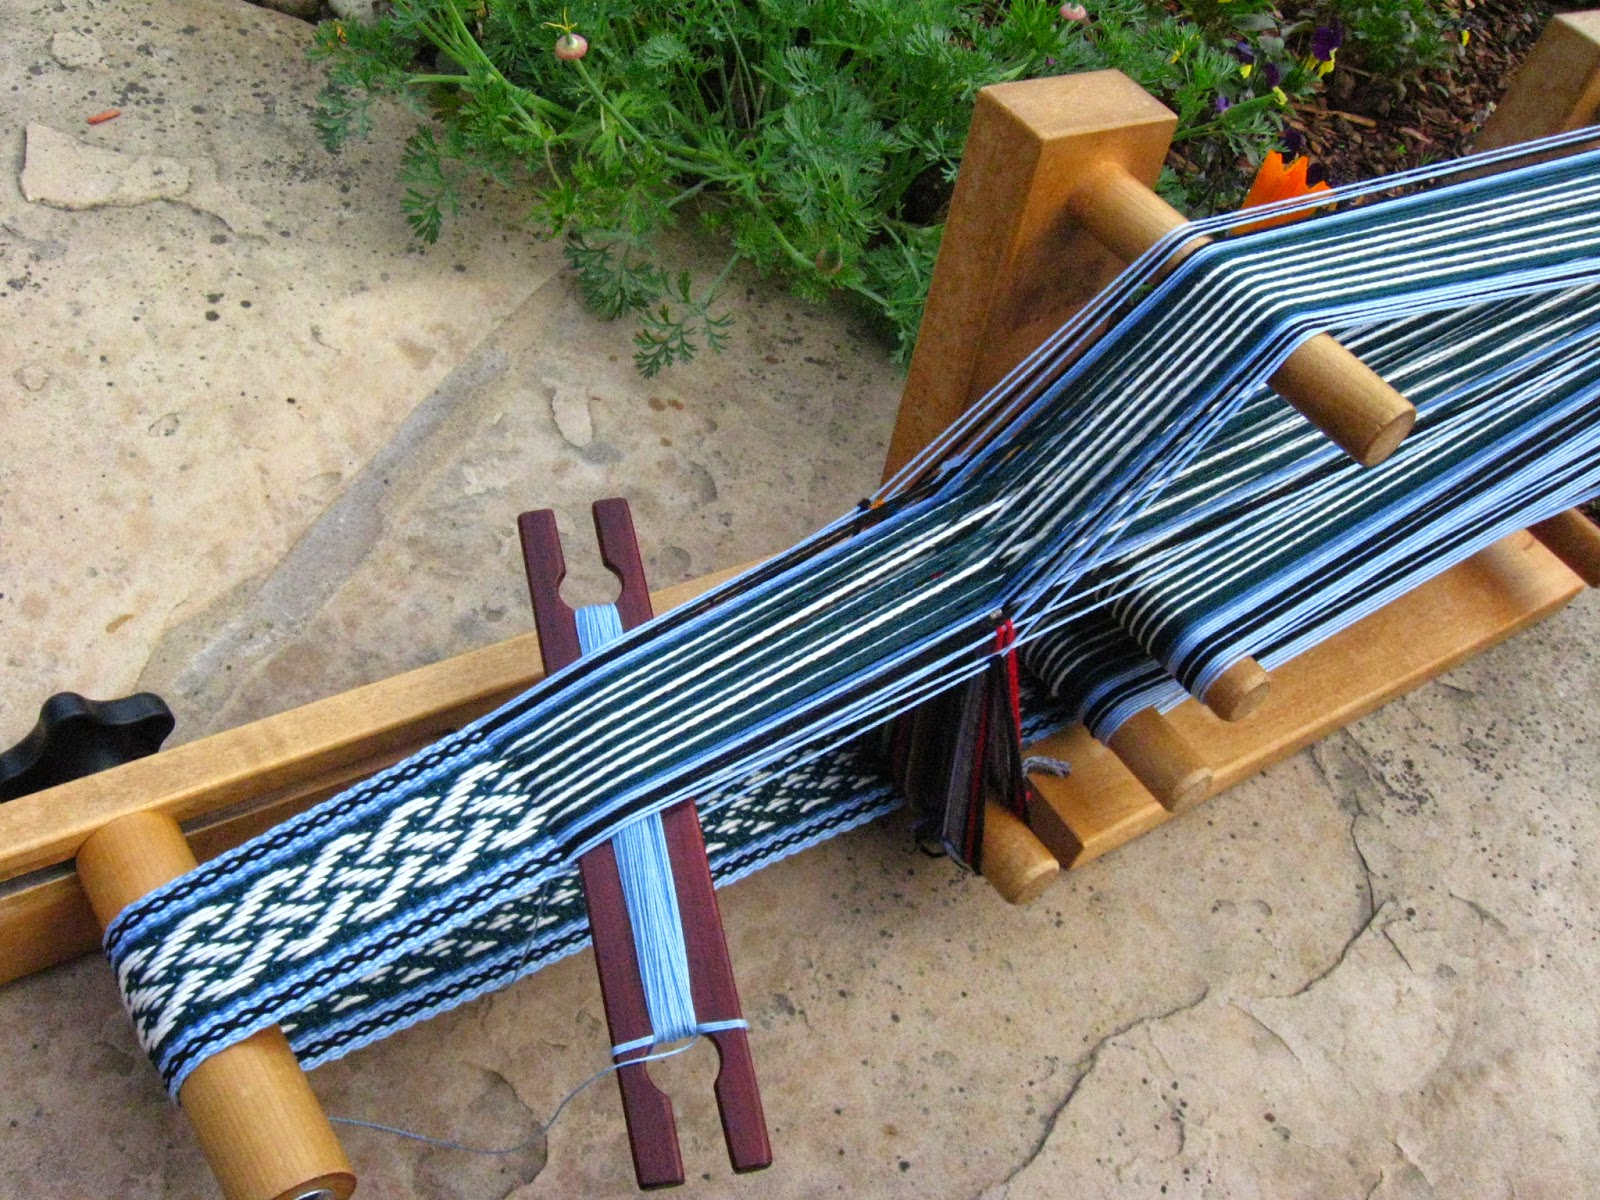 This loom is perfectly configured for ease of weaving in my opinion i much prefer the slide type tensioner of this loom to the paddle type